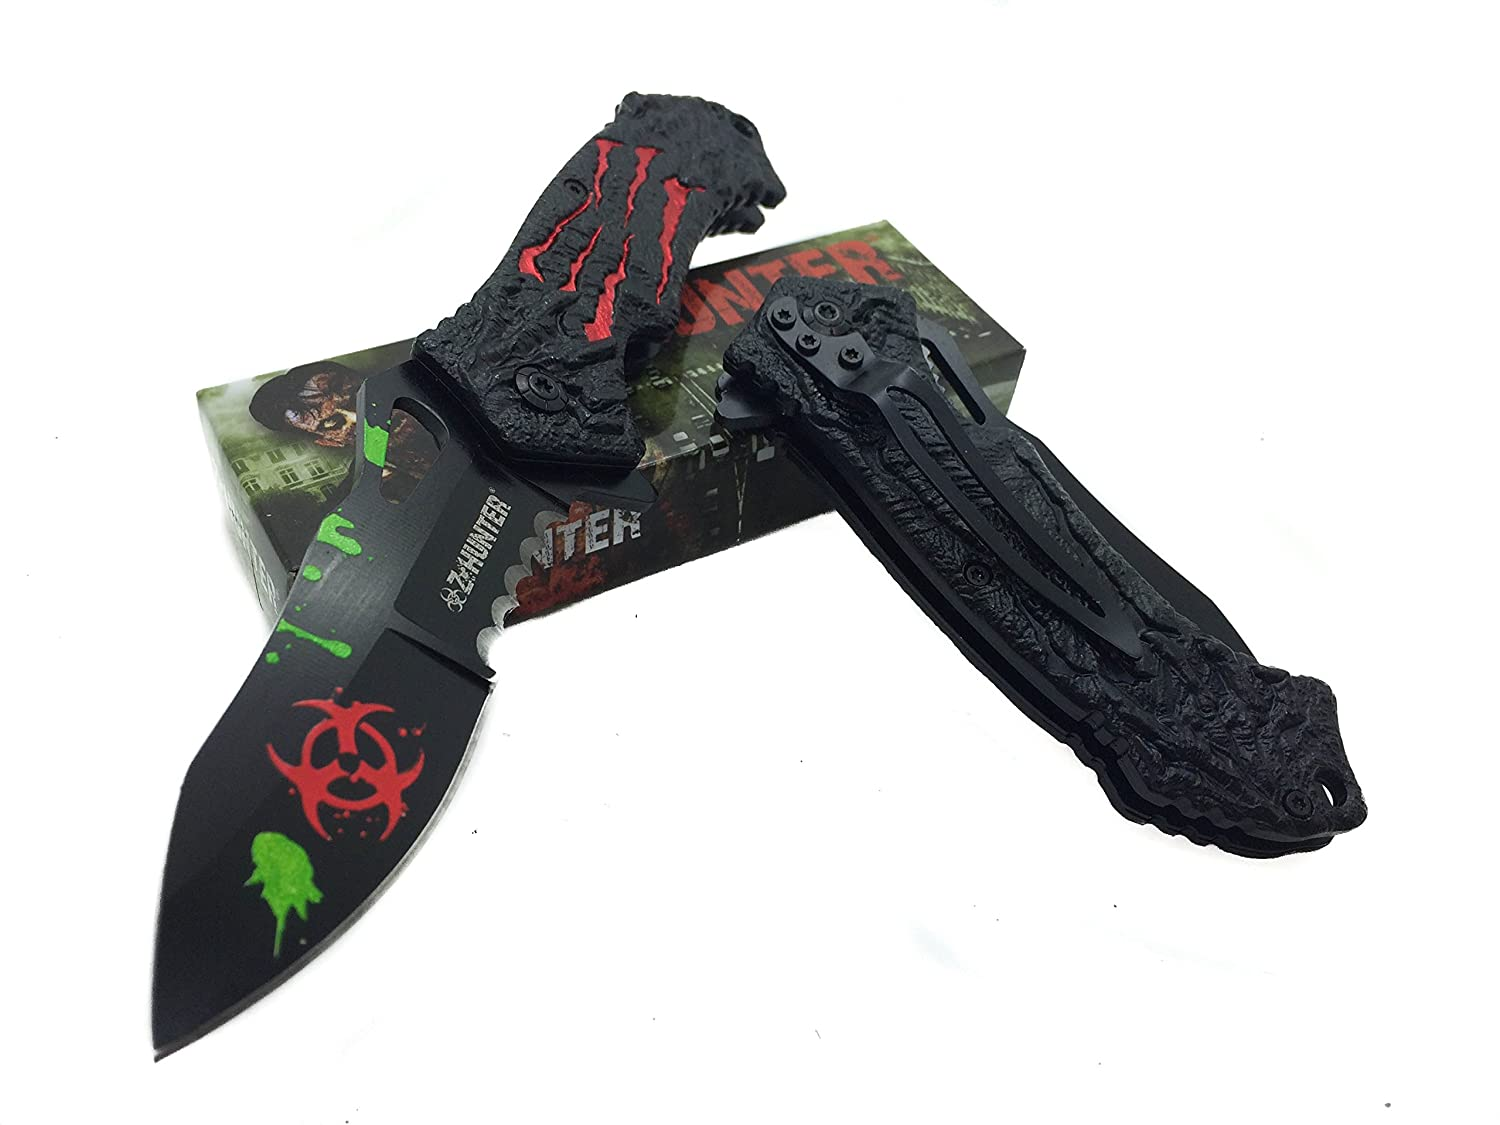 Z – Hunter Red Bio Hazard Logo on Blade Stainless Steel with Red Claw Pattern on Handle